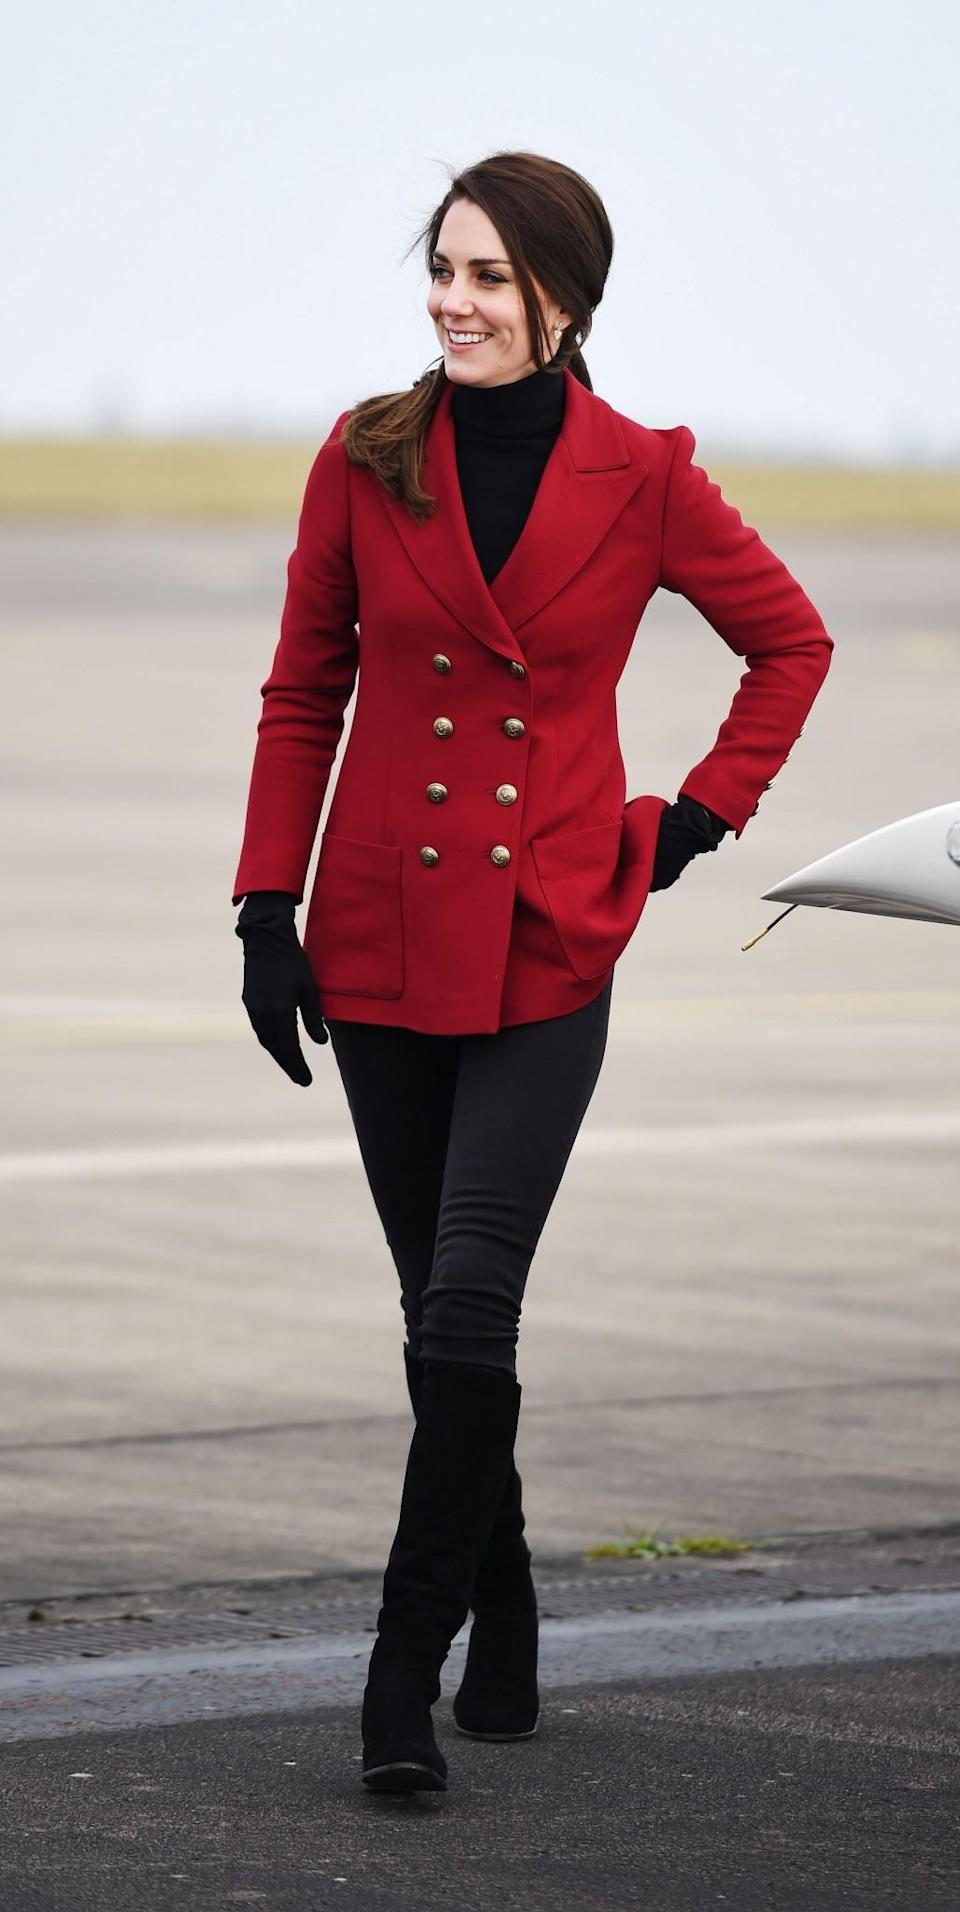 <p>The Duchess spent Valentine's Day with young Air Cadets at an RAF base near Peterborough. She suitably wore a military-inspired look featuring a double-breasted red jacket by Philosophy di Lorenzo Serafini and her favourite suede Stuart Weitzman boots.<br><i>[Photo: PA]</i> </p>